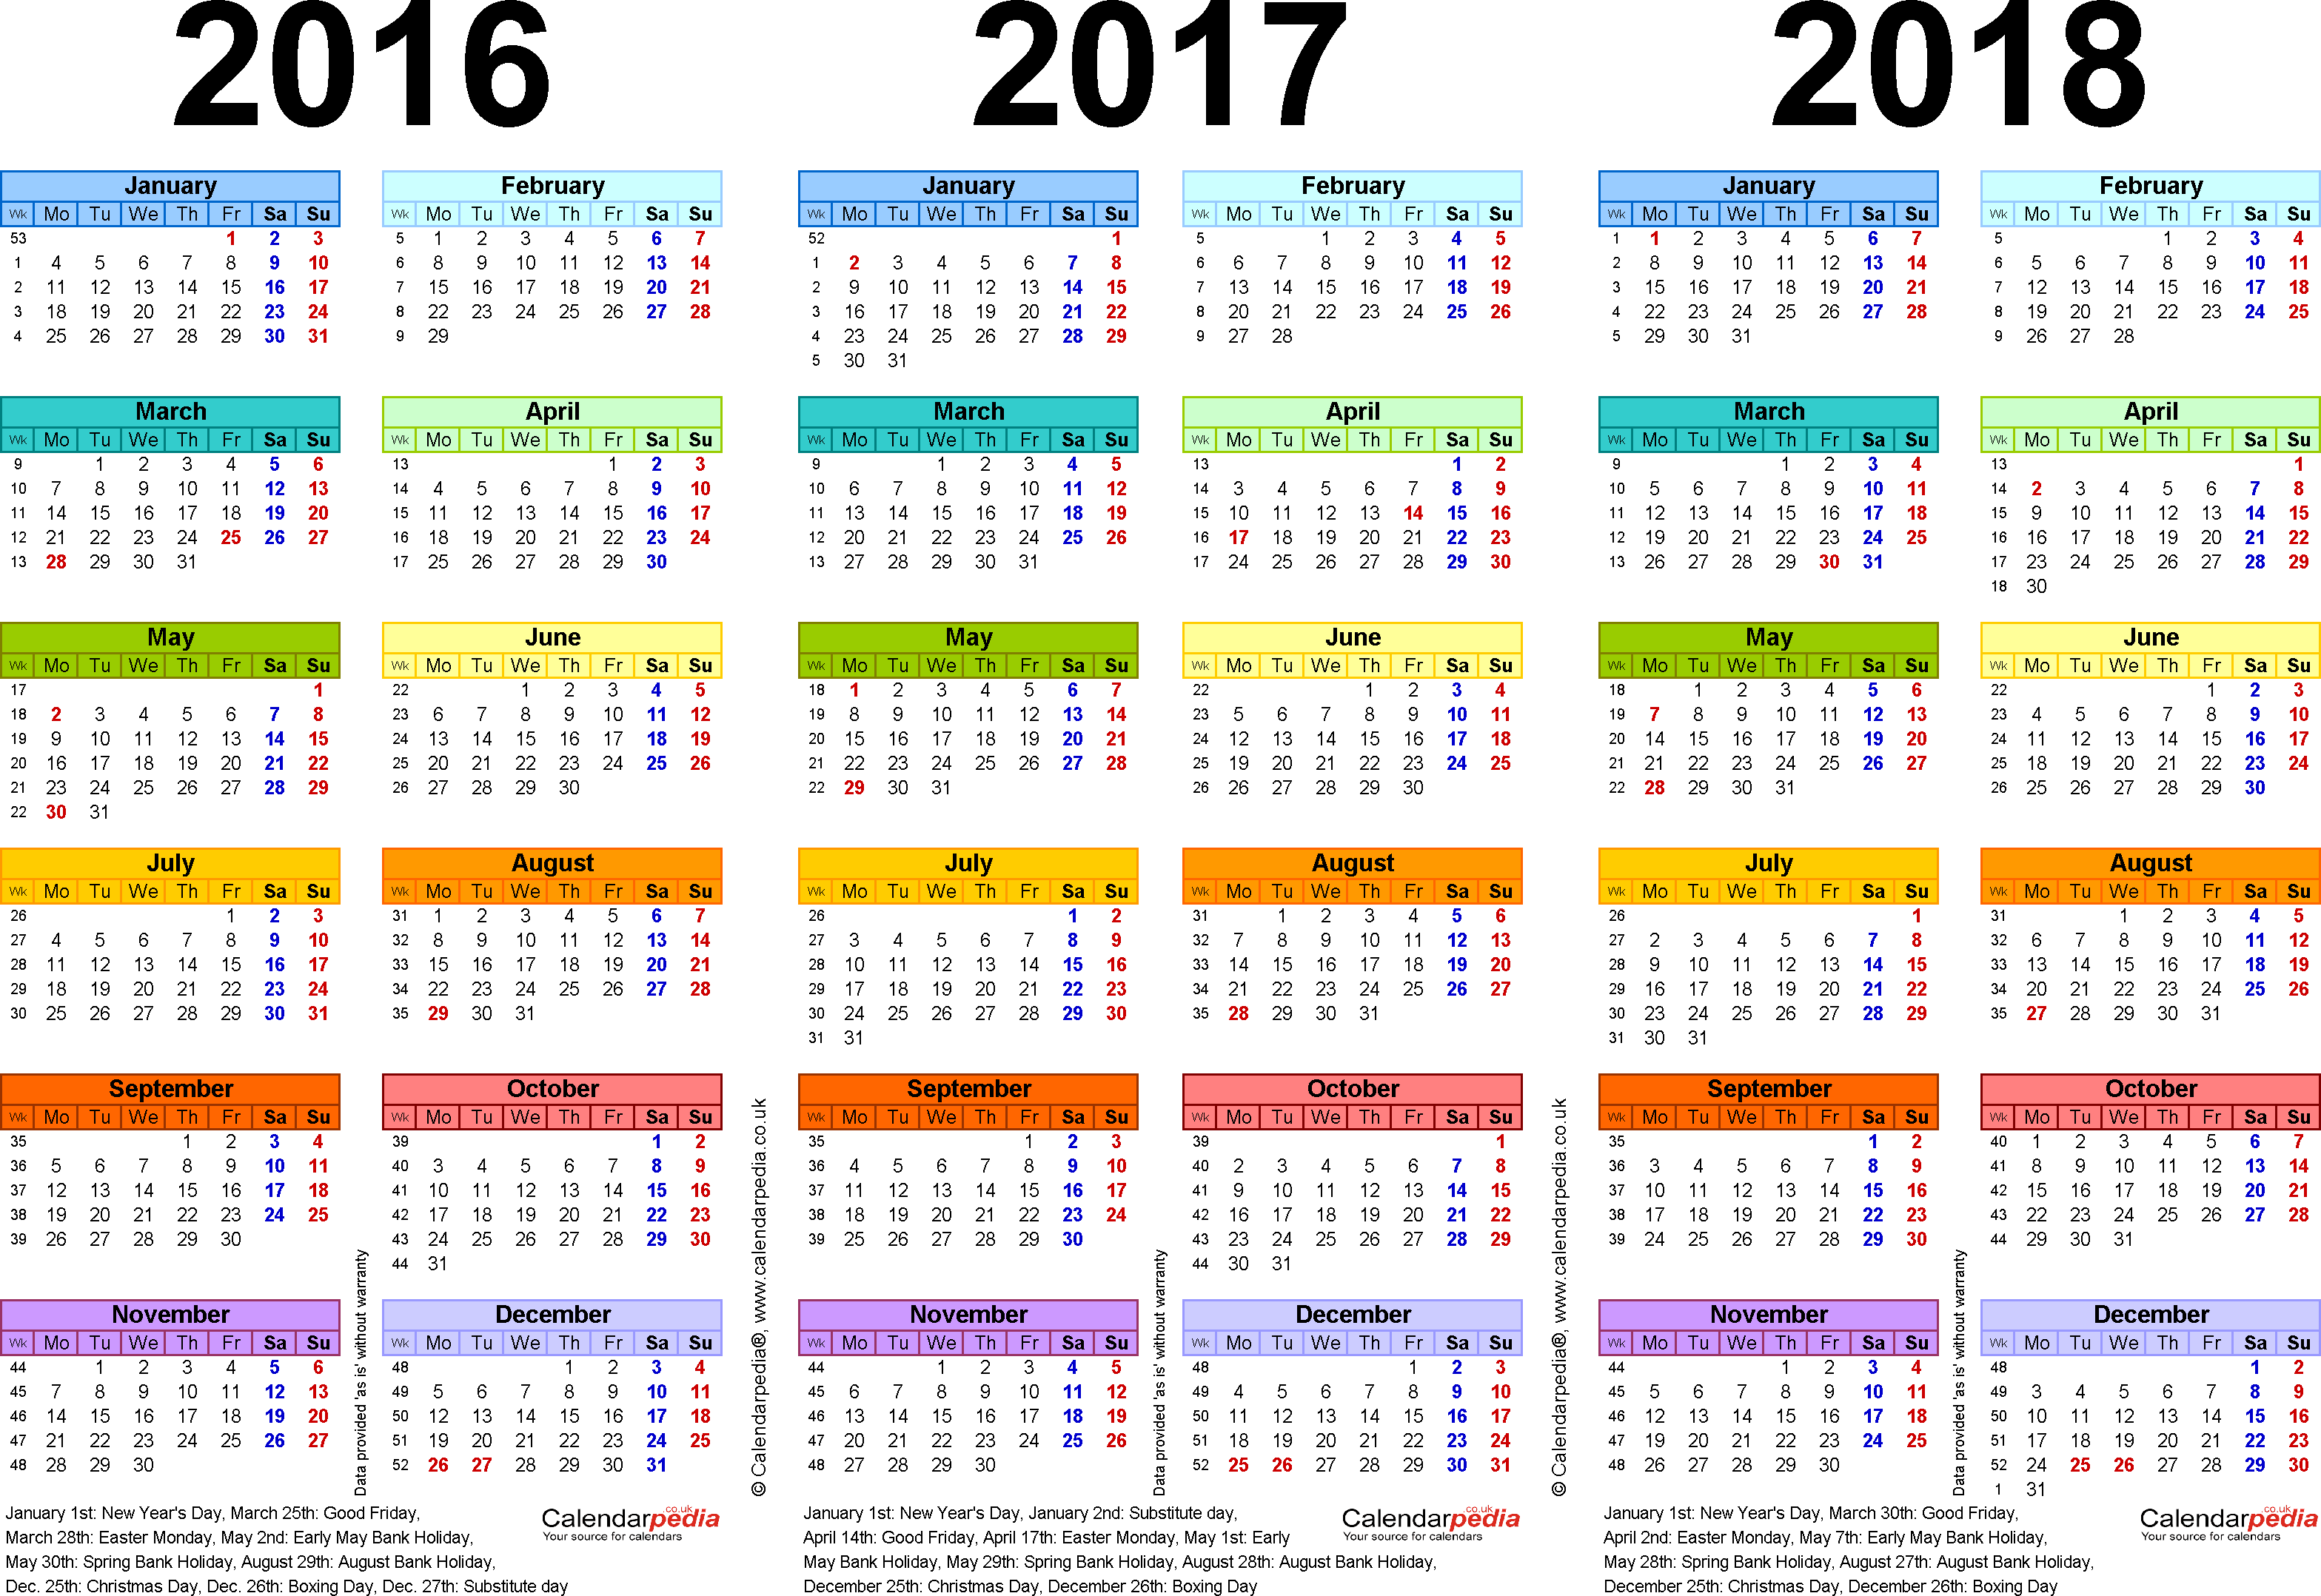 Download Template 1: Excel template for three year calendar 2016-2018 in colour (landscape orientation, 1 page, A4)